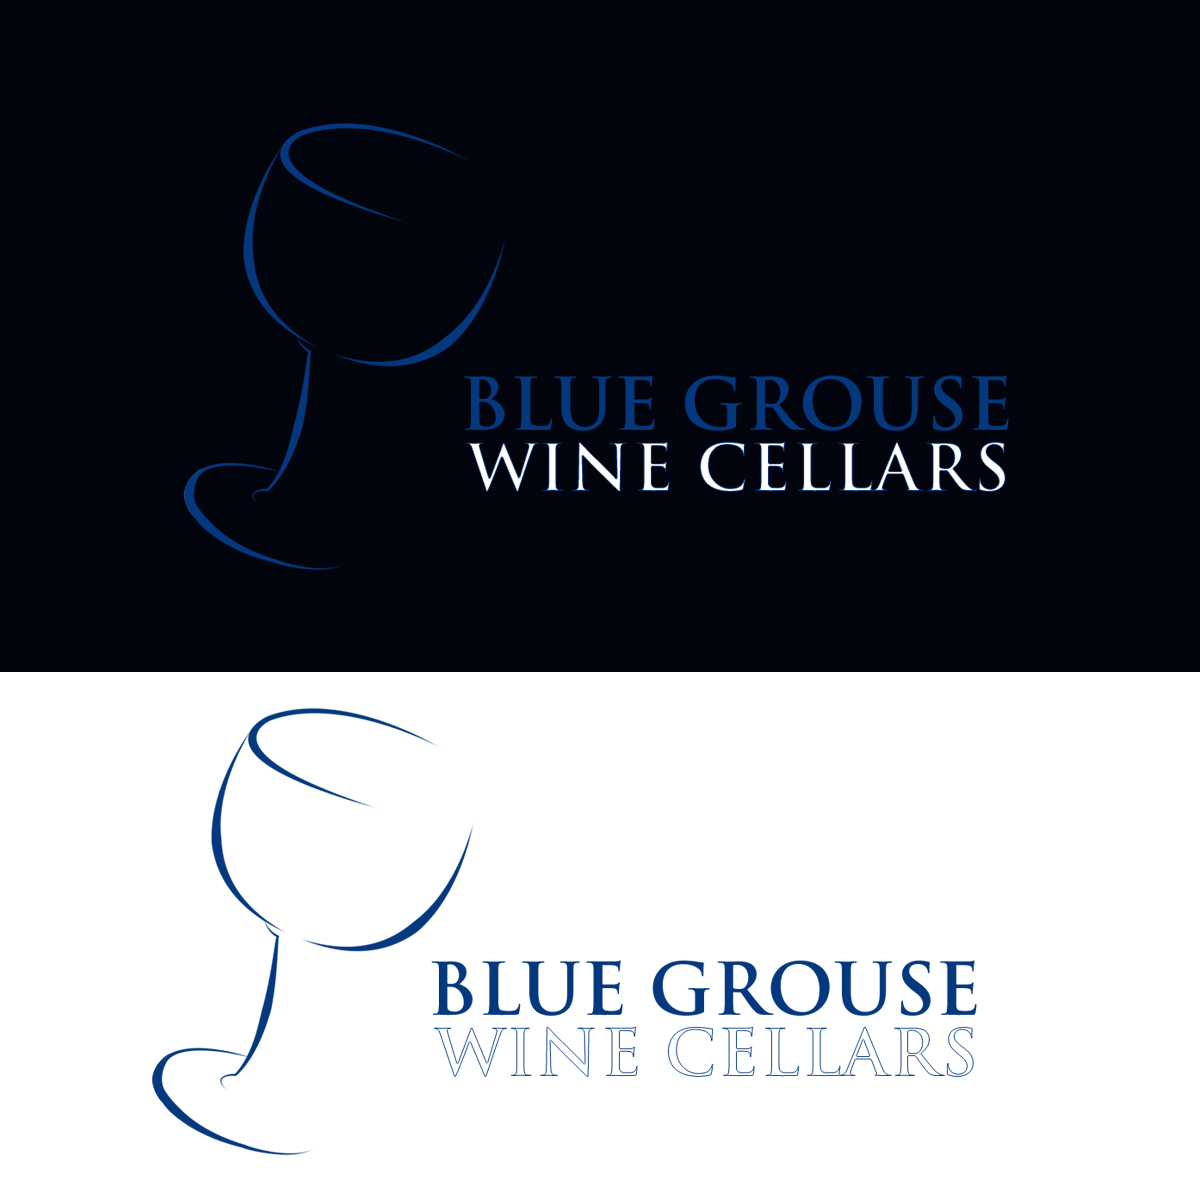 Logo Design by Private User - Entry No. 156 in the Logo Design Contest Creative Logo Design for Blue Grouse Wine Cellars.